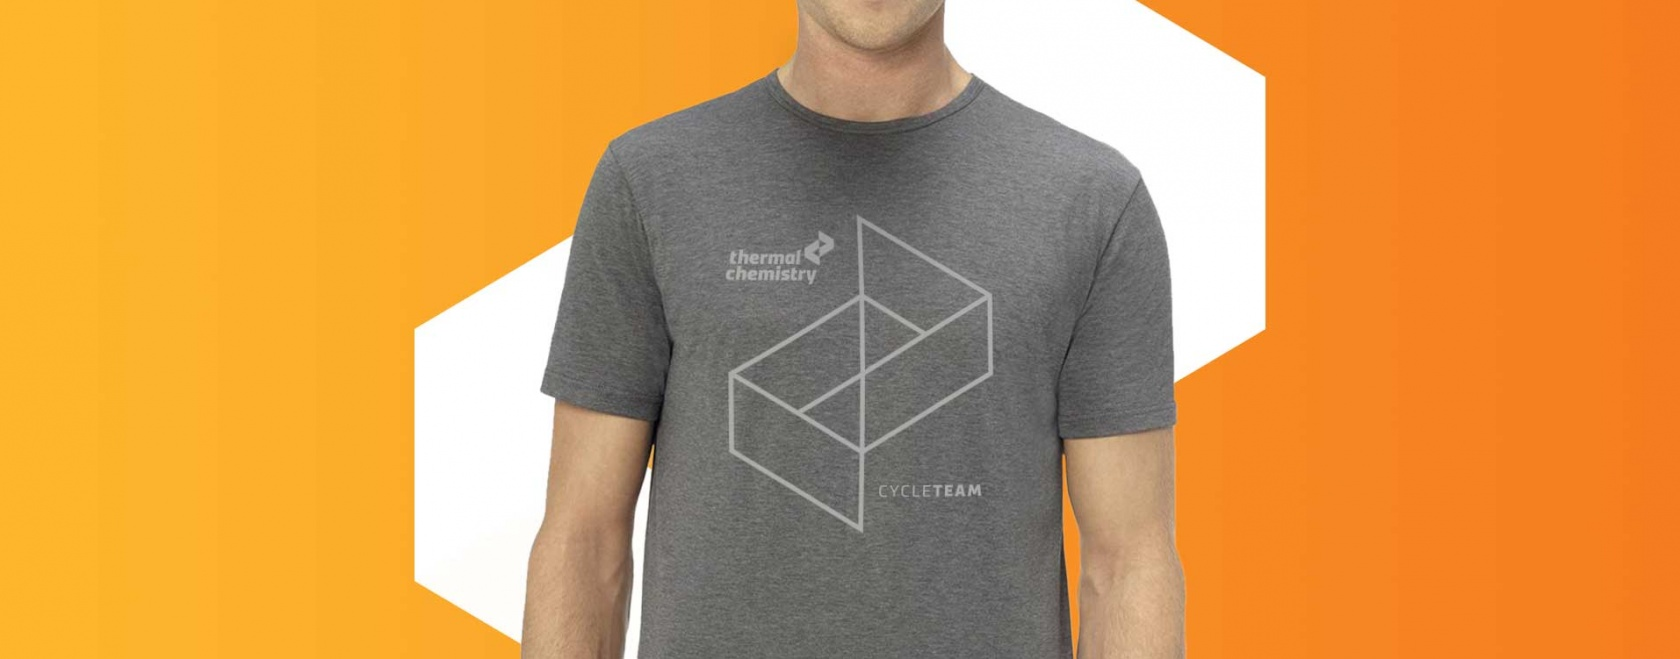 project-Thermalchemistry-tshirt